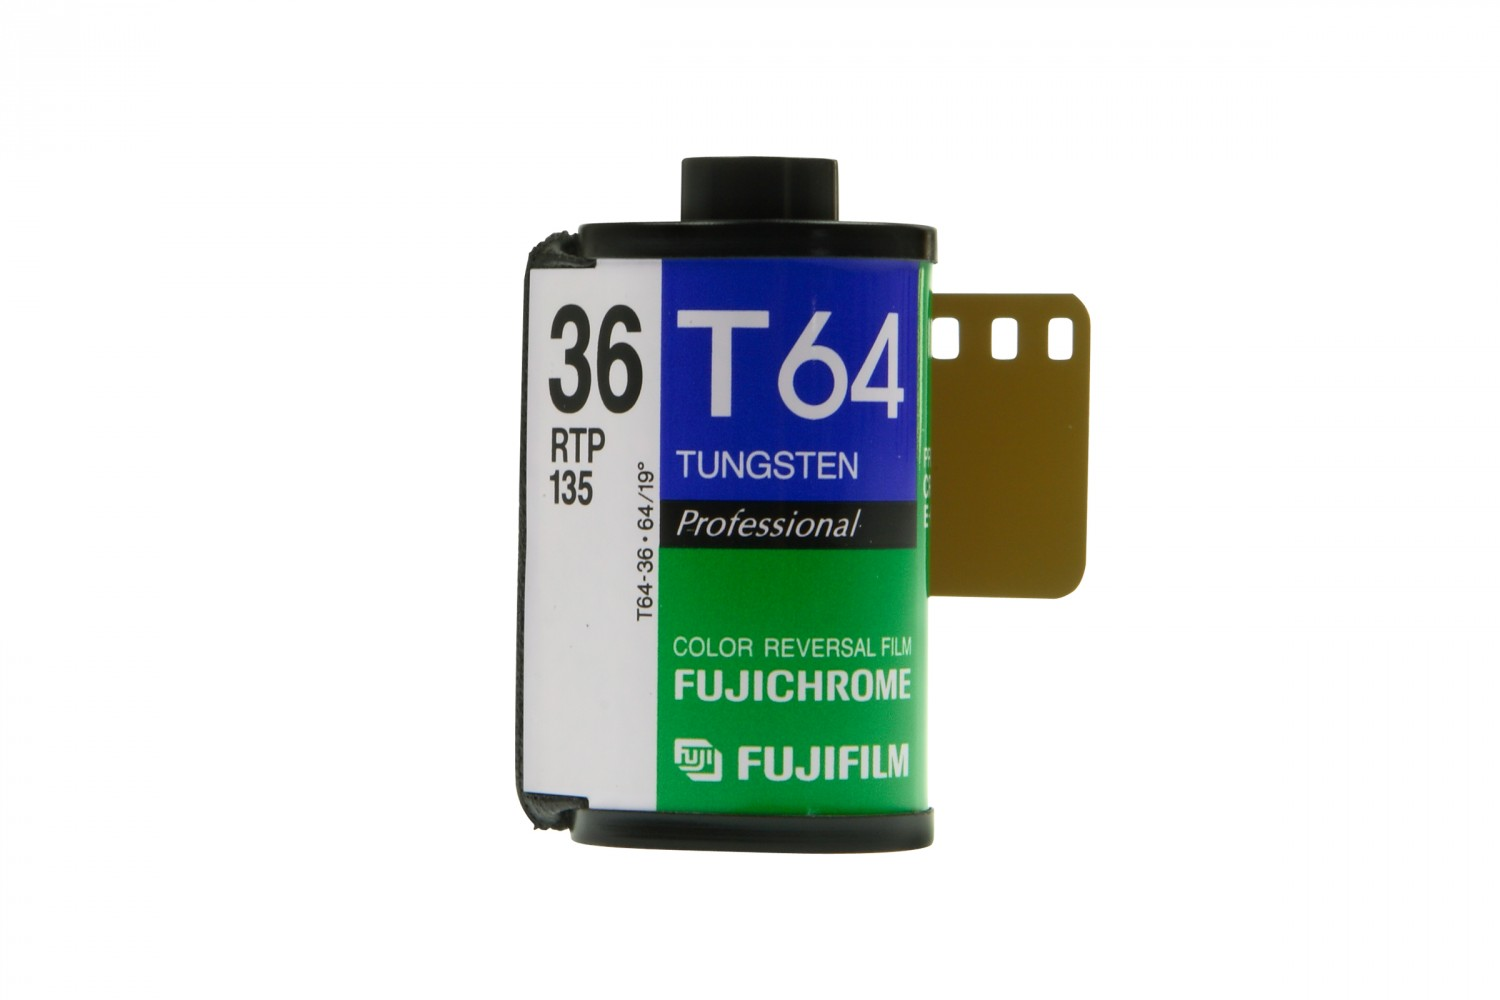 Fujichrome T64 RTP 35mm Tungsten Expired